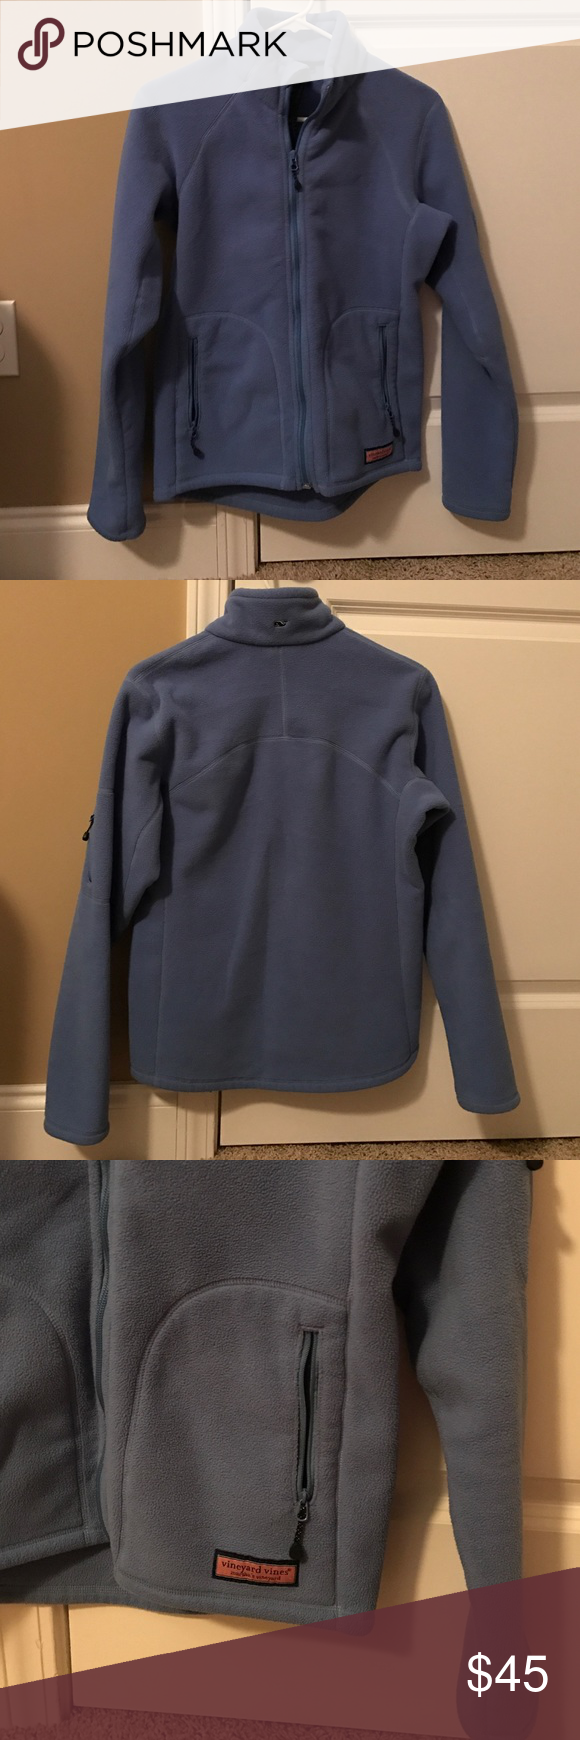 Vineyard vines womenus zip up fleece jacket vineyard vines zip